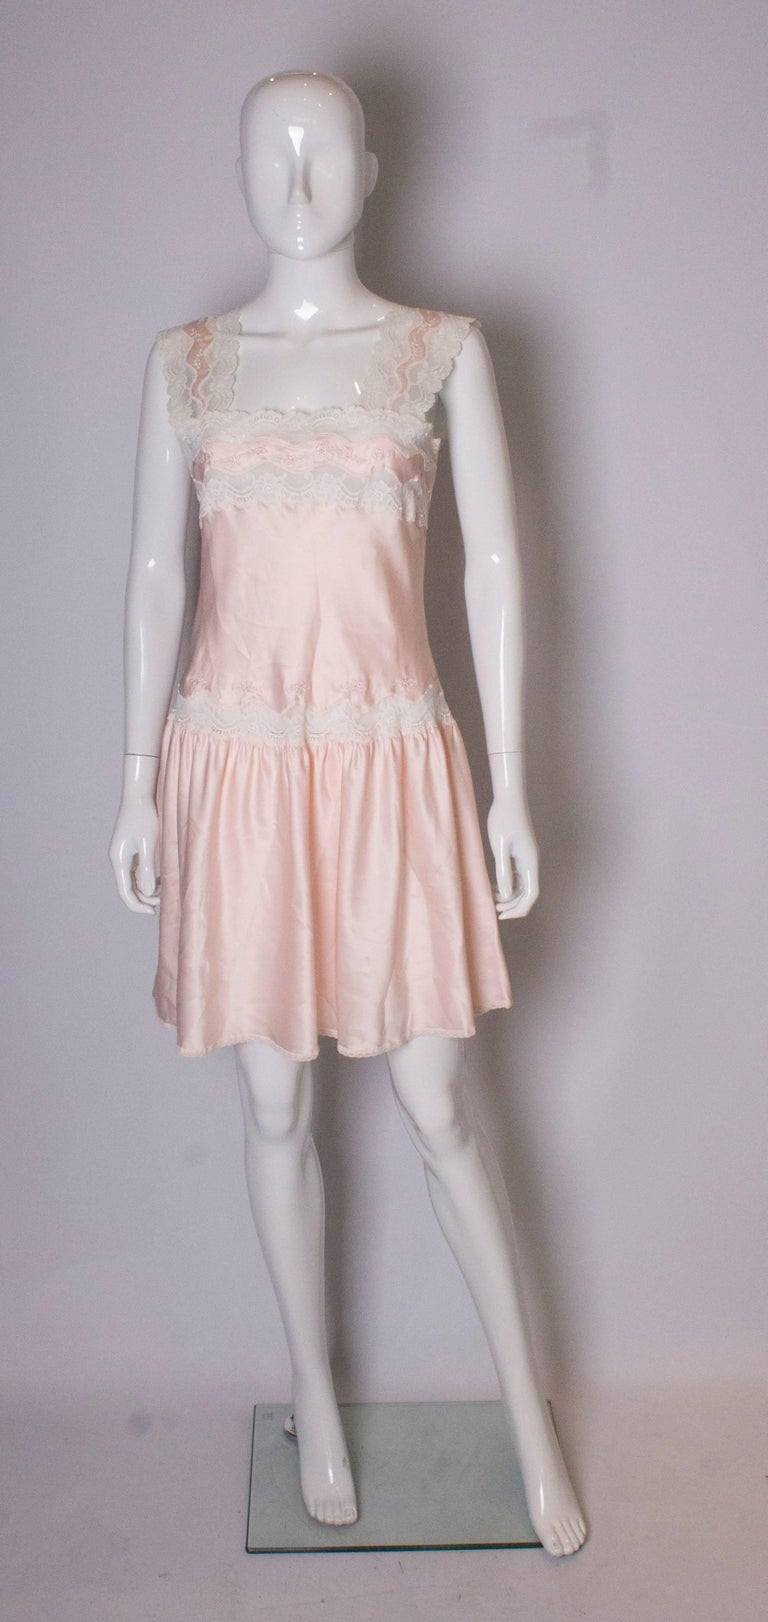 A charming vintage dress ( or nightdress ) by Marks and Spencer. In a pale pink with lace and embroidery trim, the dress has a drop waist and wide shoulders.